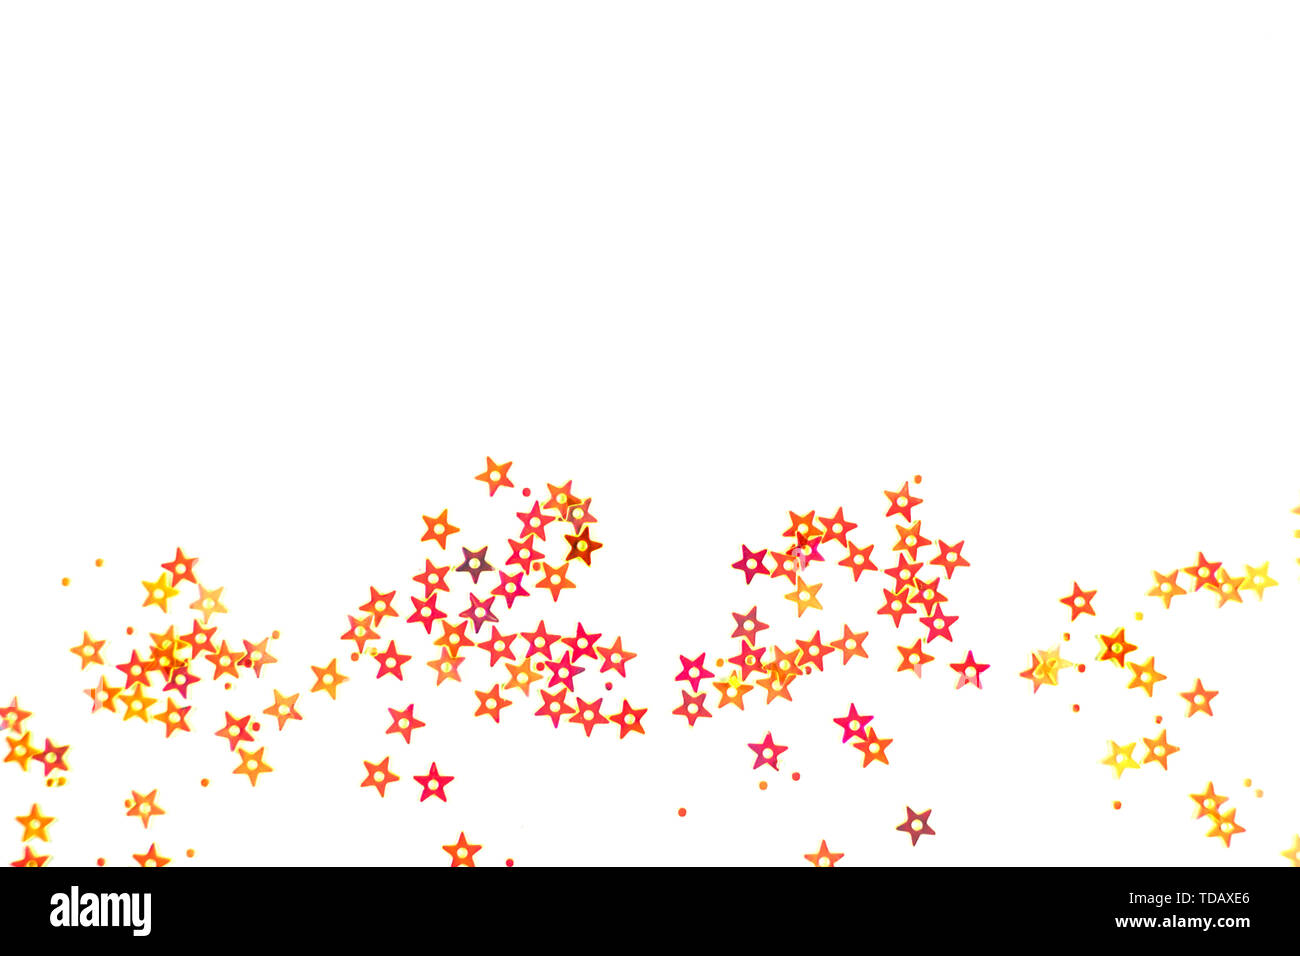 Bunch of colored stars on white background. Stock Photo